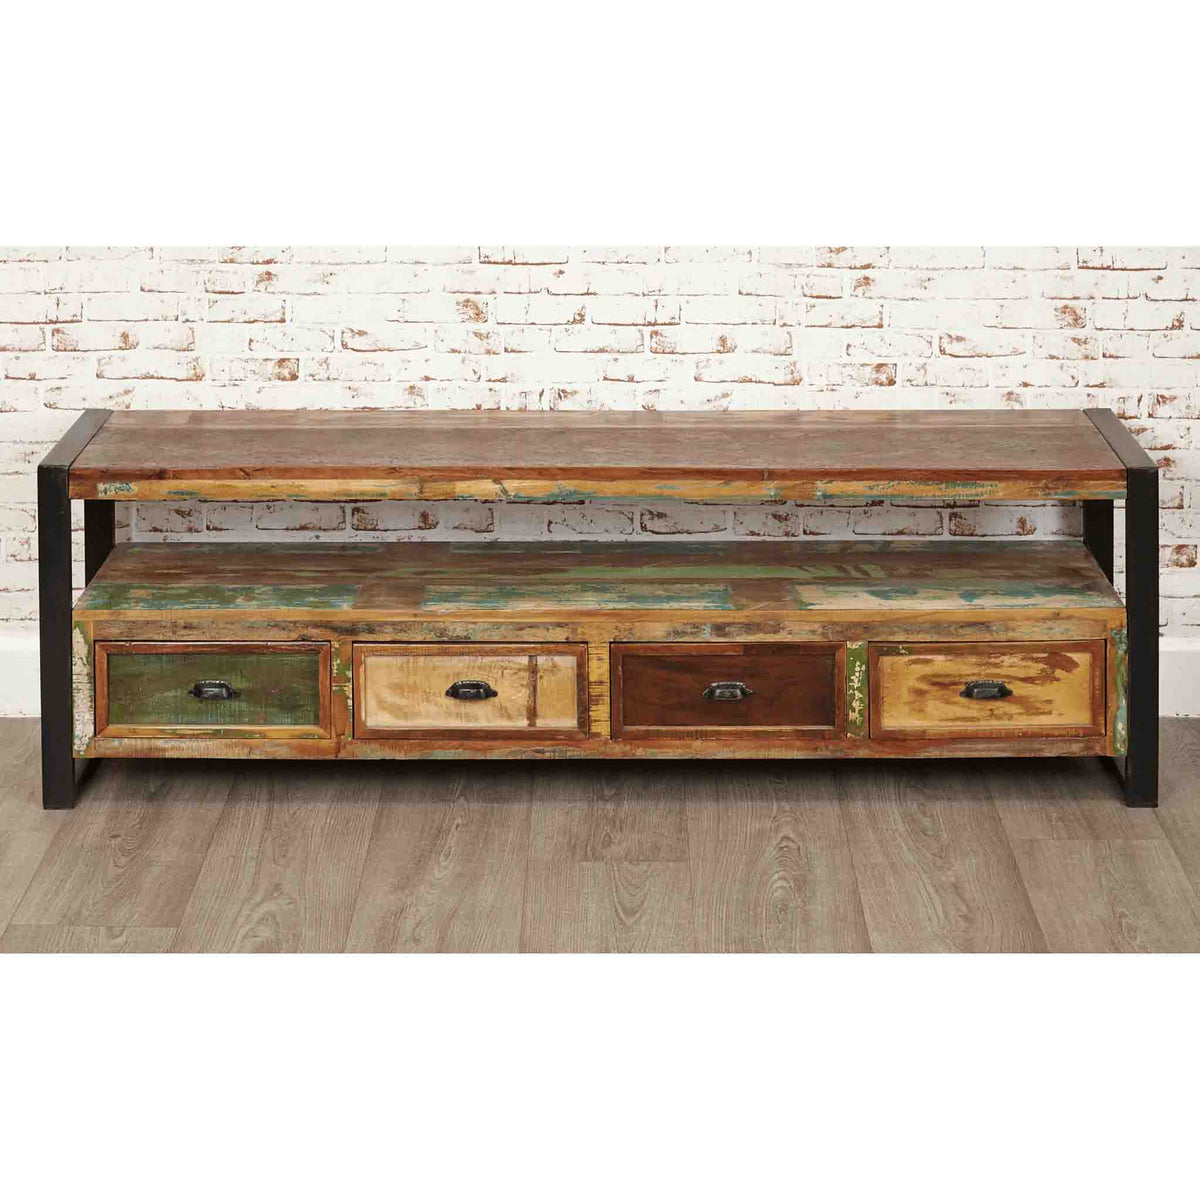 The Urban Chic Industrial Reclaimed Wood Extra Large TV Cabinet with Steel Frame